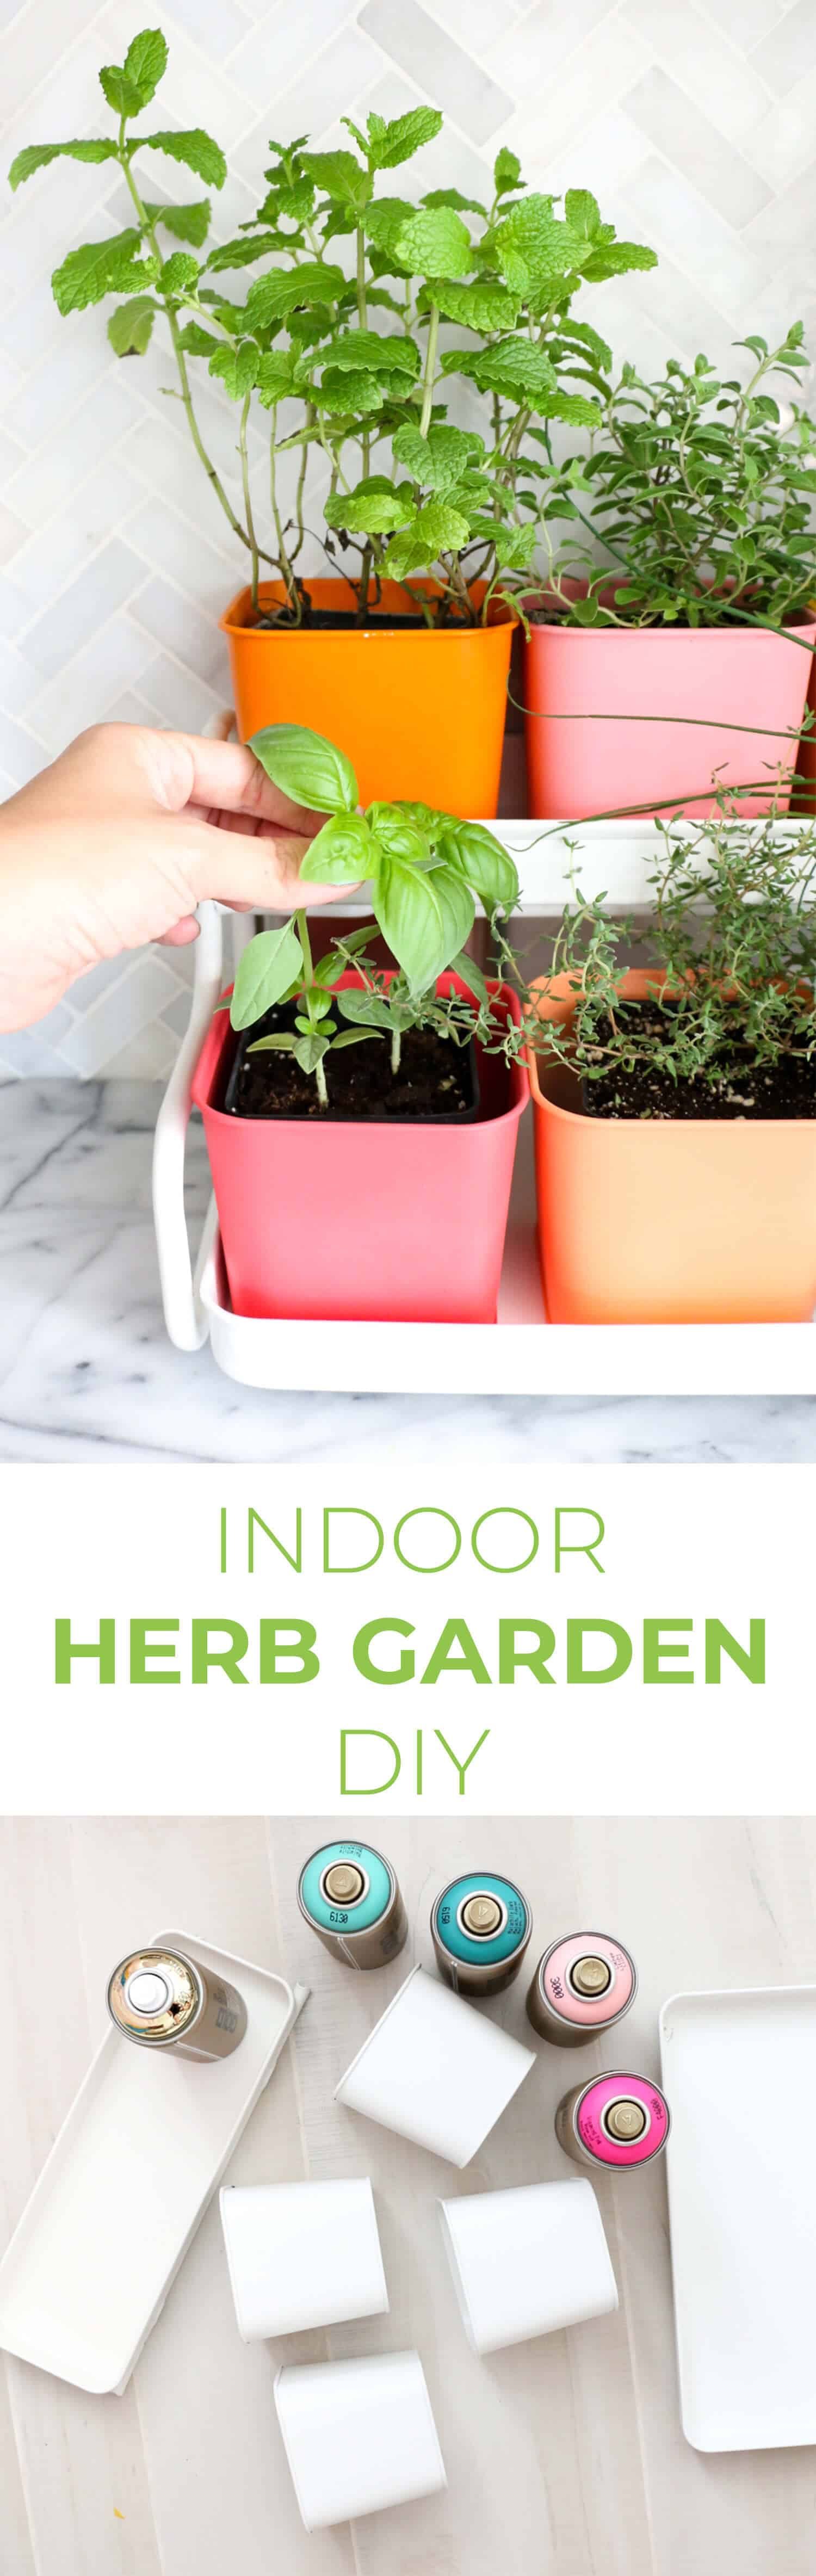 kitchen for herb how indoor story herbs ideas your digest planter to architectural ikea indoors grow garden